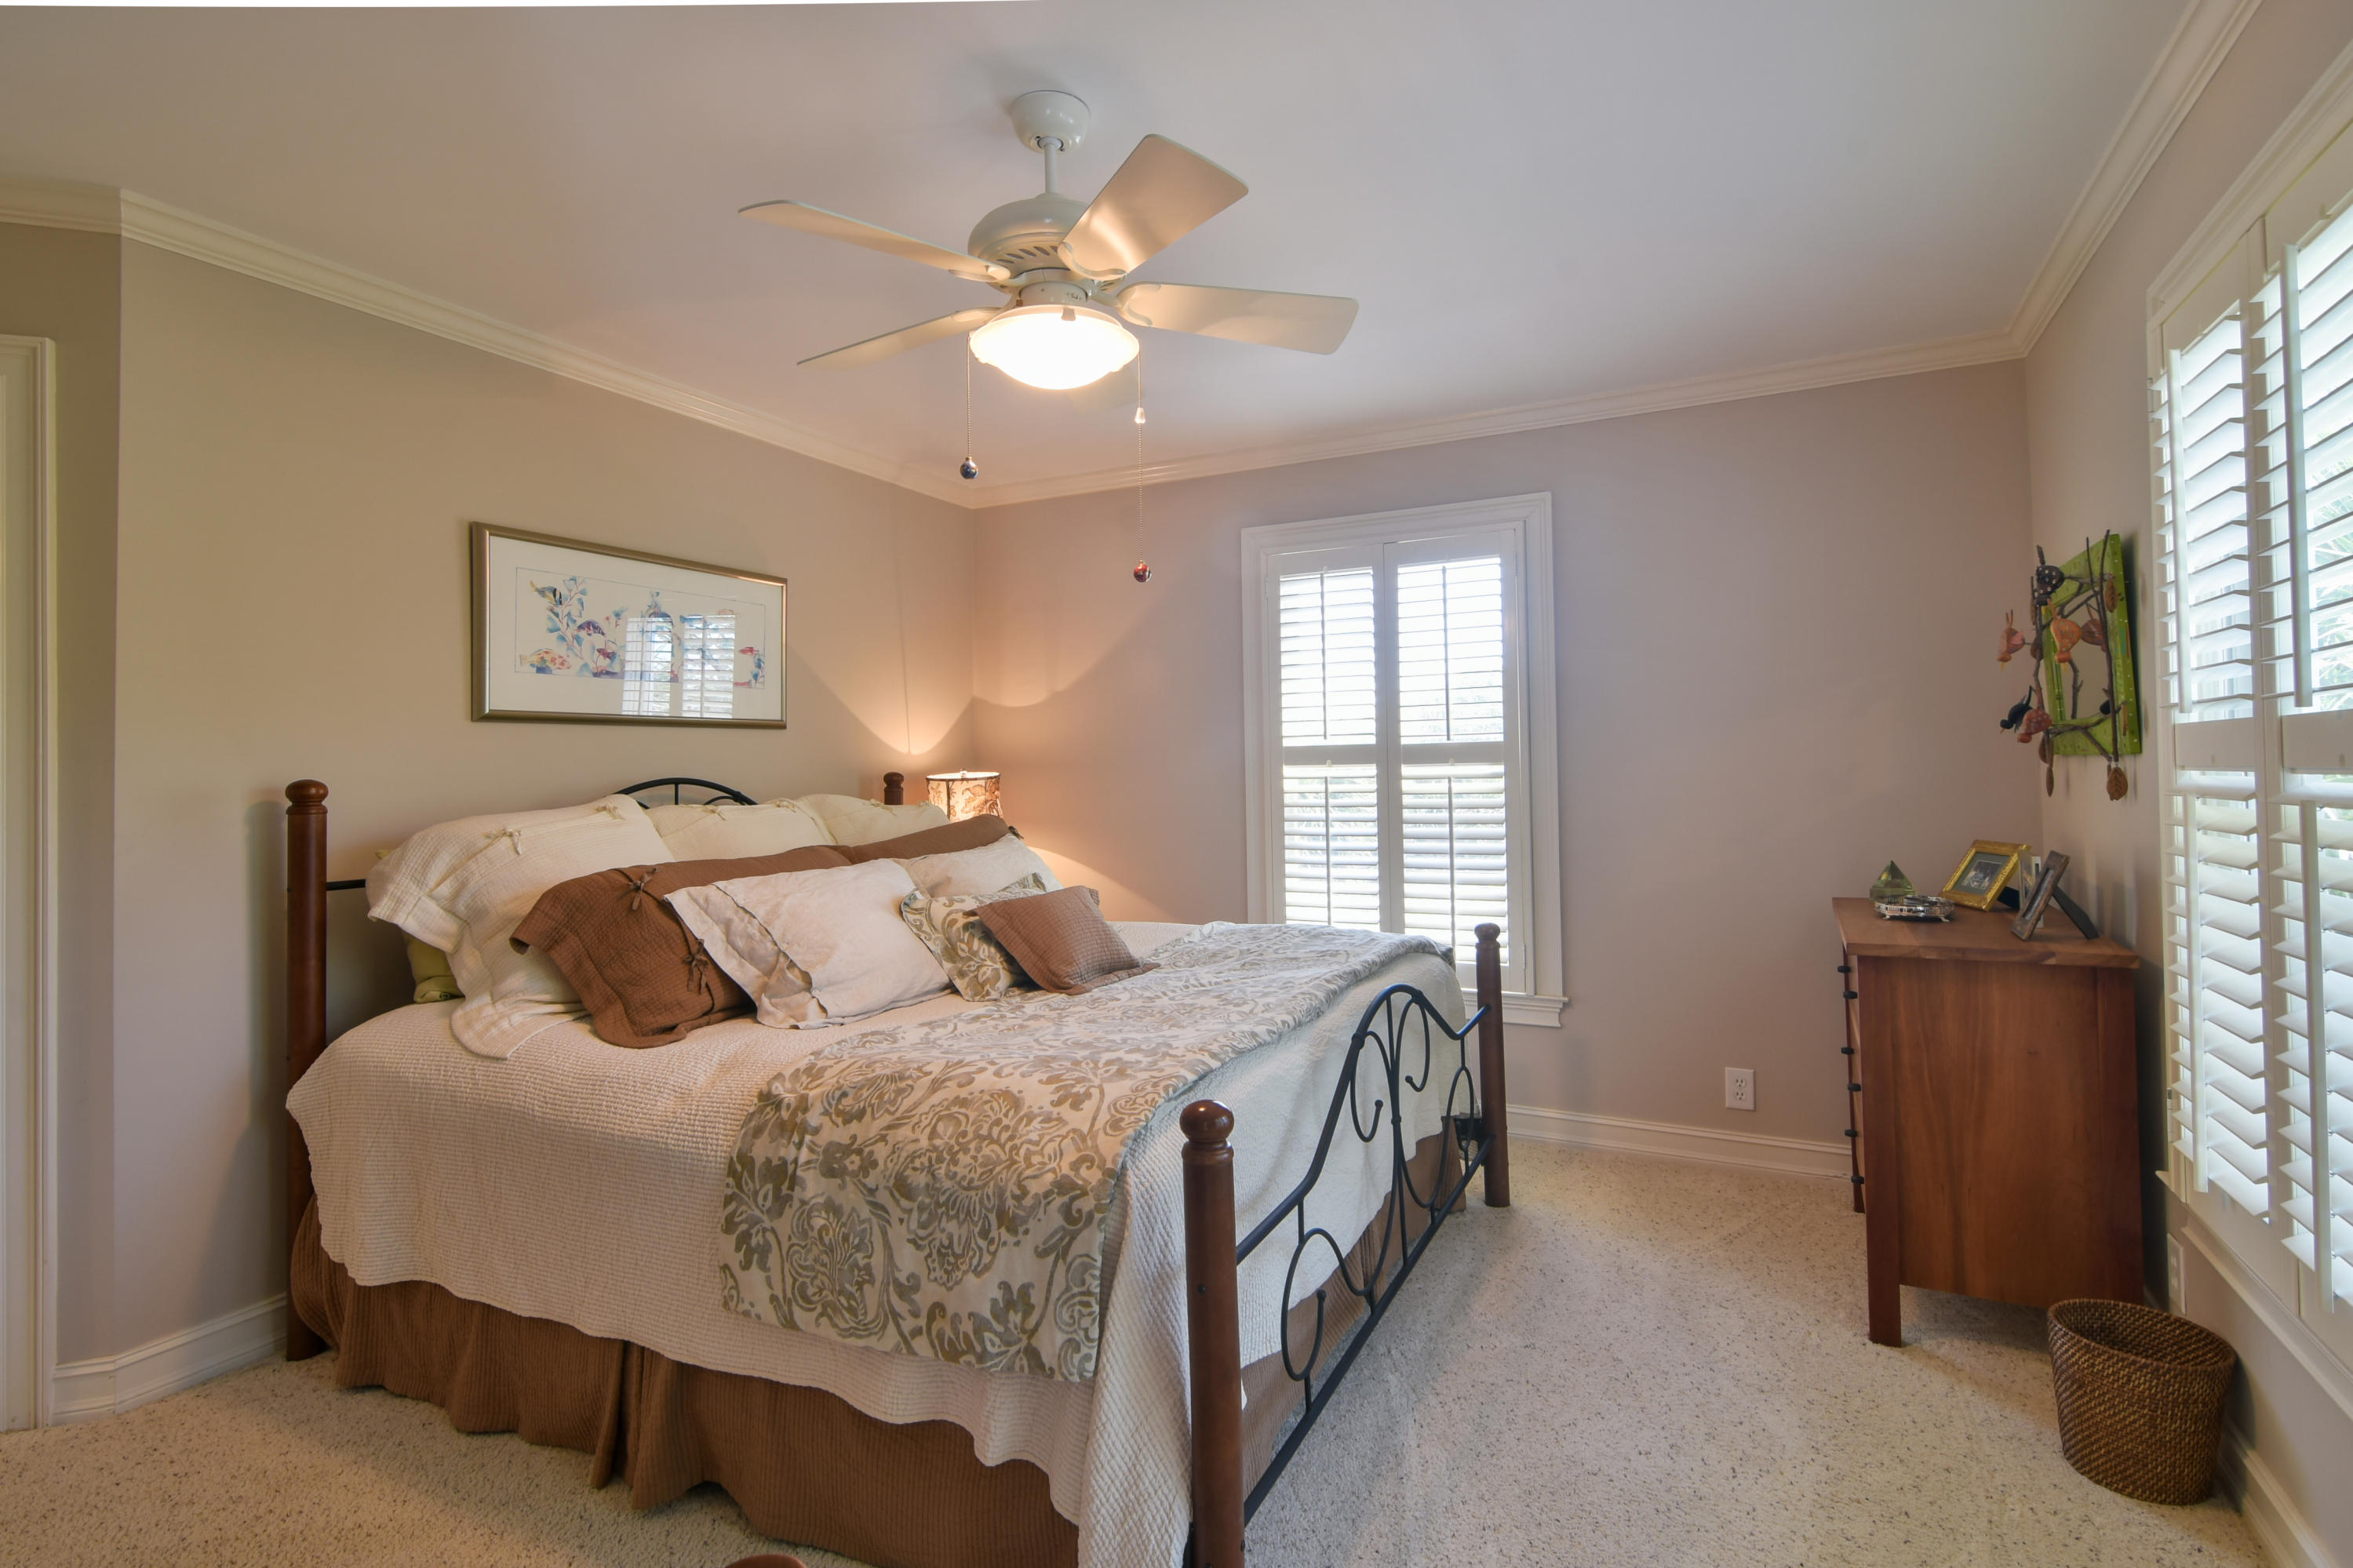 Sullivans Island Homes For Sale - 405 Station 12, Sullivans Island, SC - 74